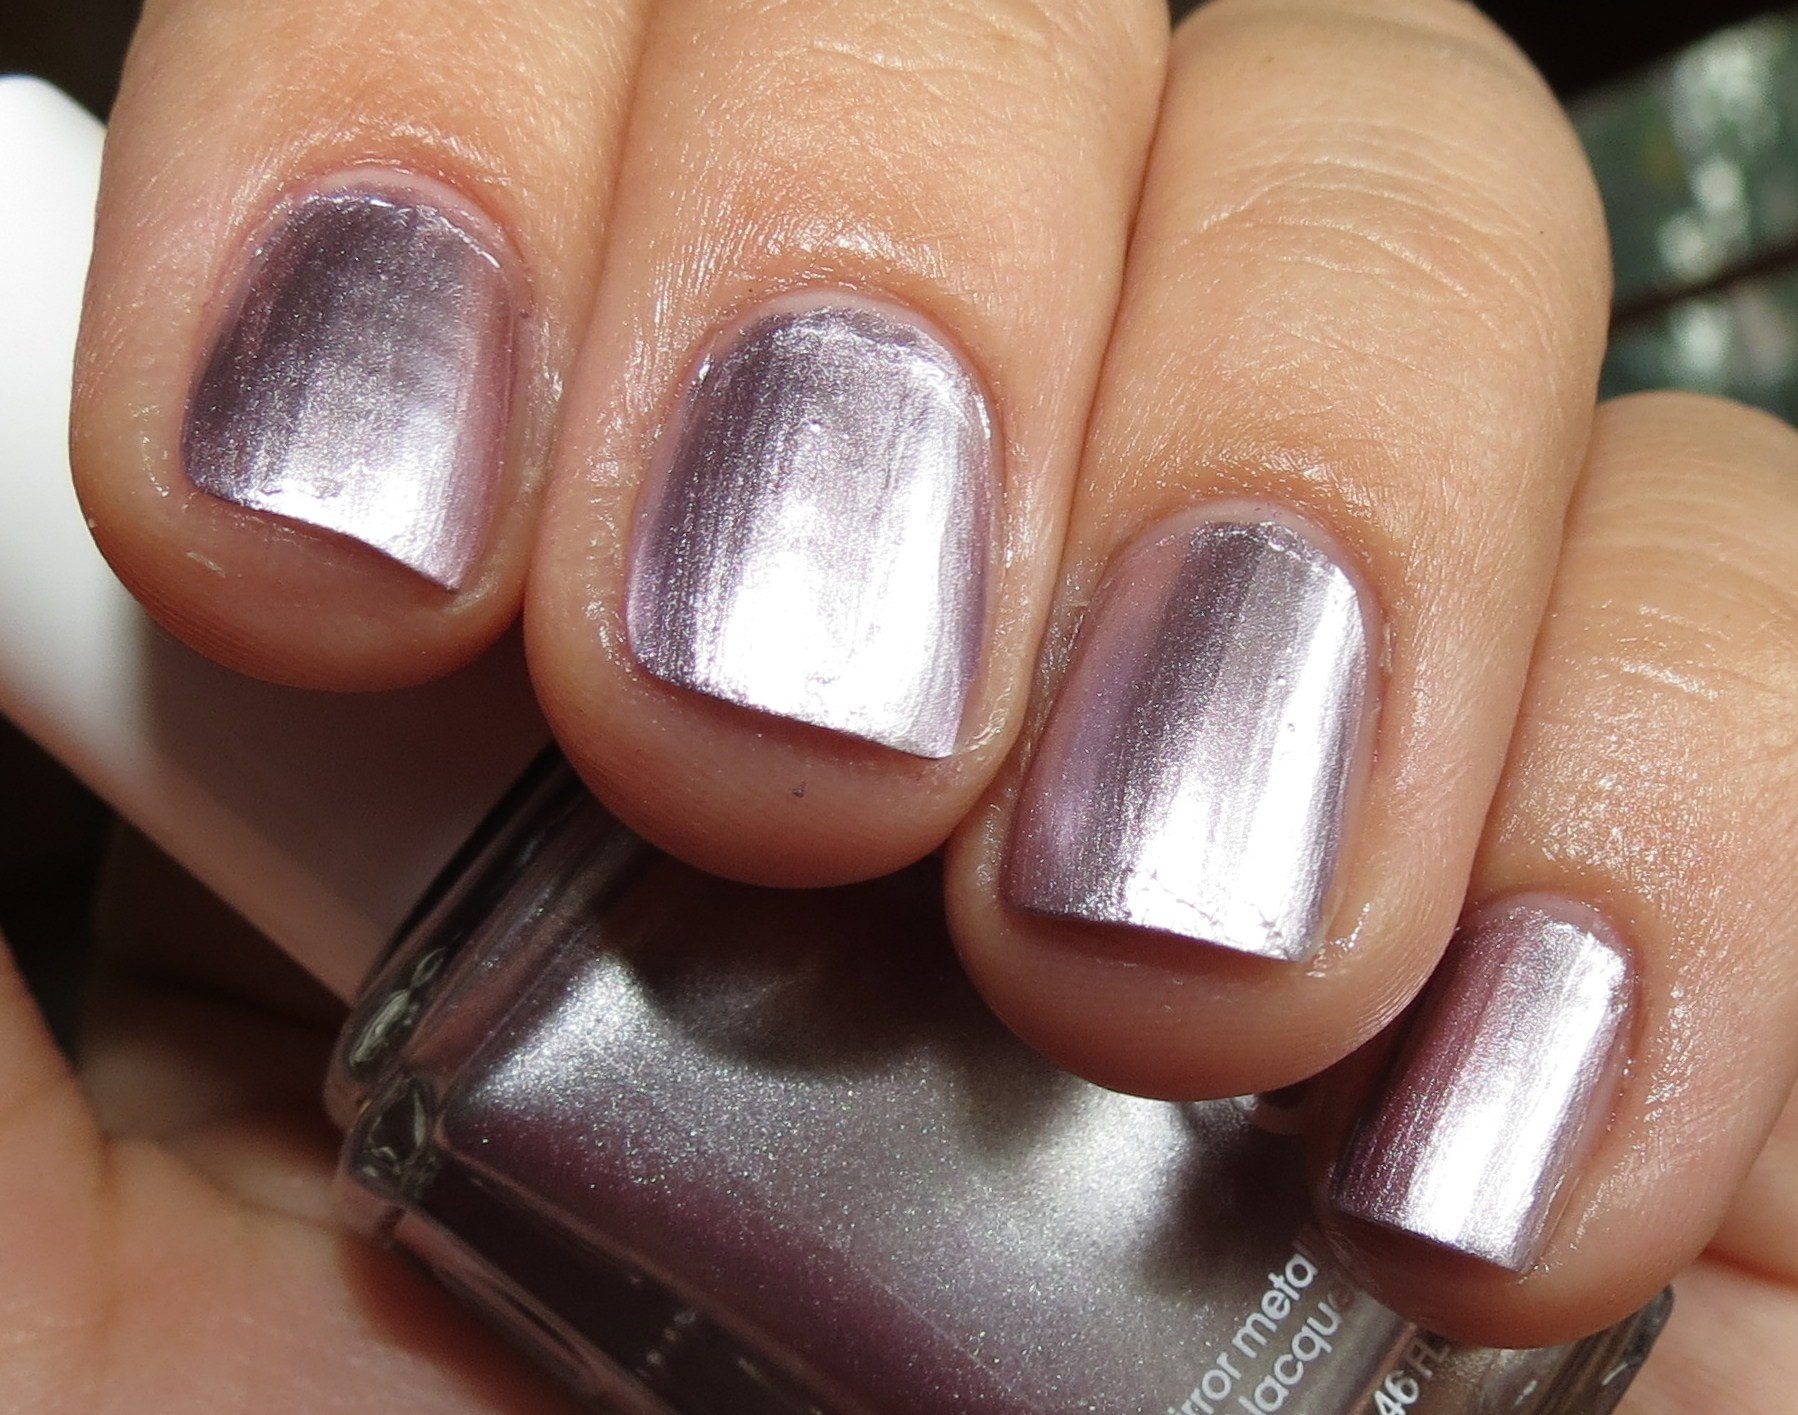 Essie NOTHING ELSE METALS Nail Polish Swatches & Review - Mirror ...